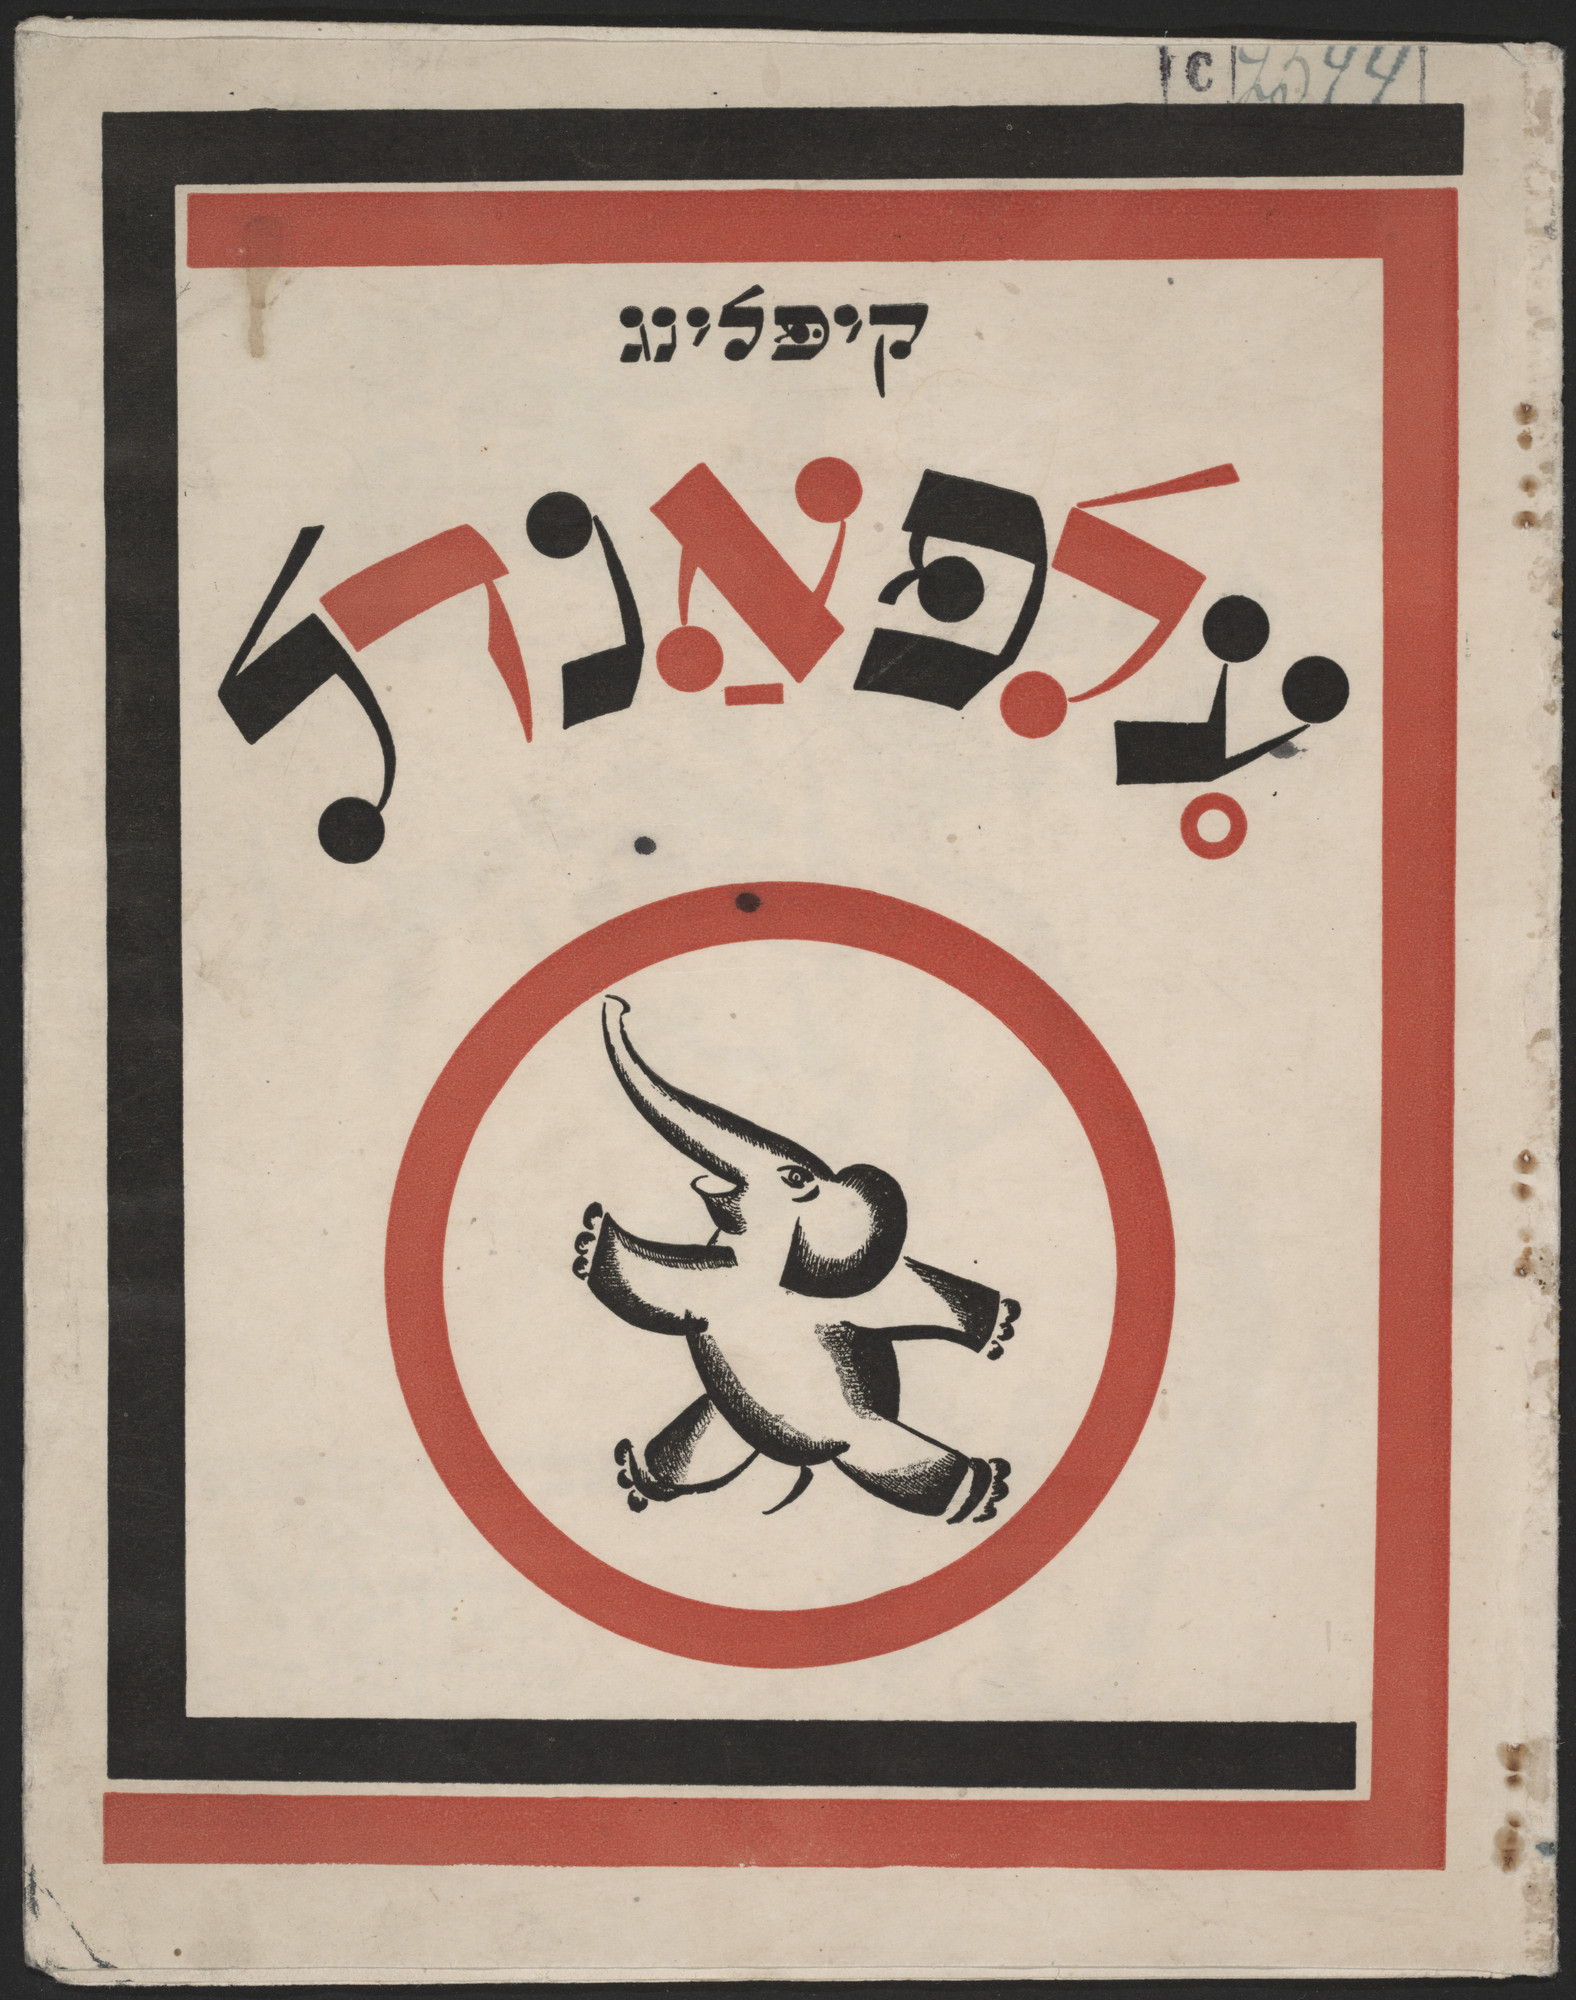 El Lissitzky. Elfandel (The Elephant's Child). 1922